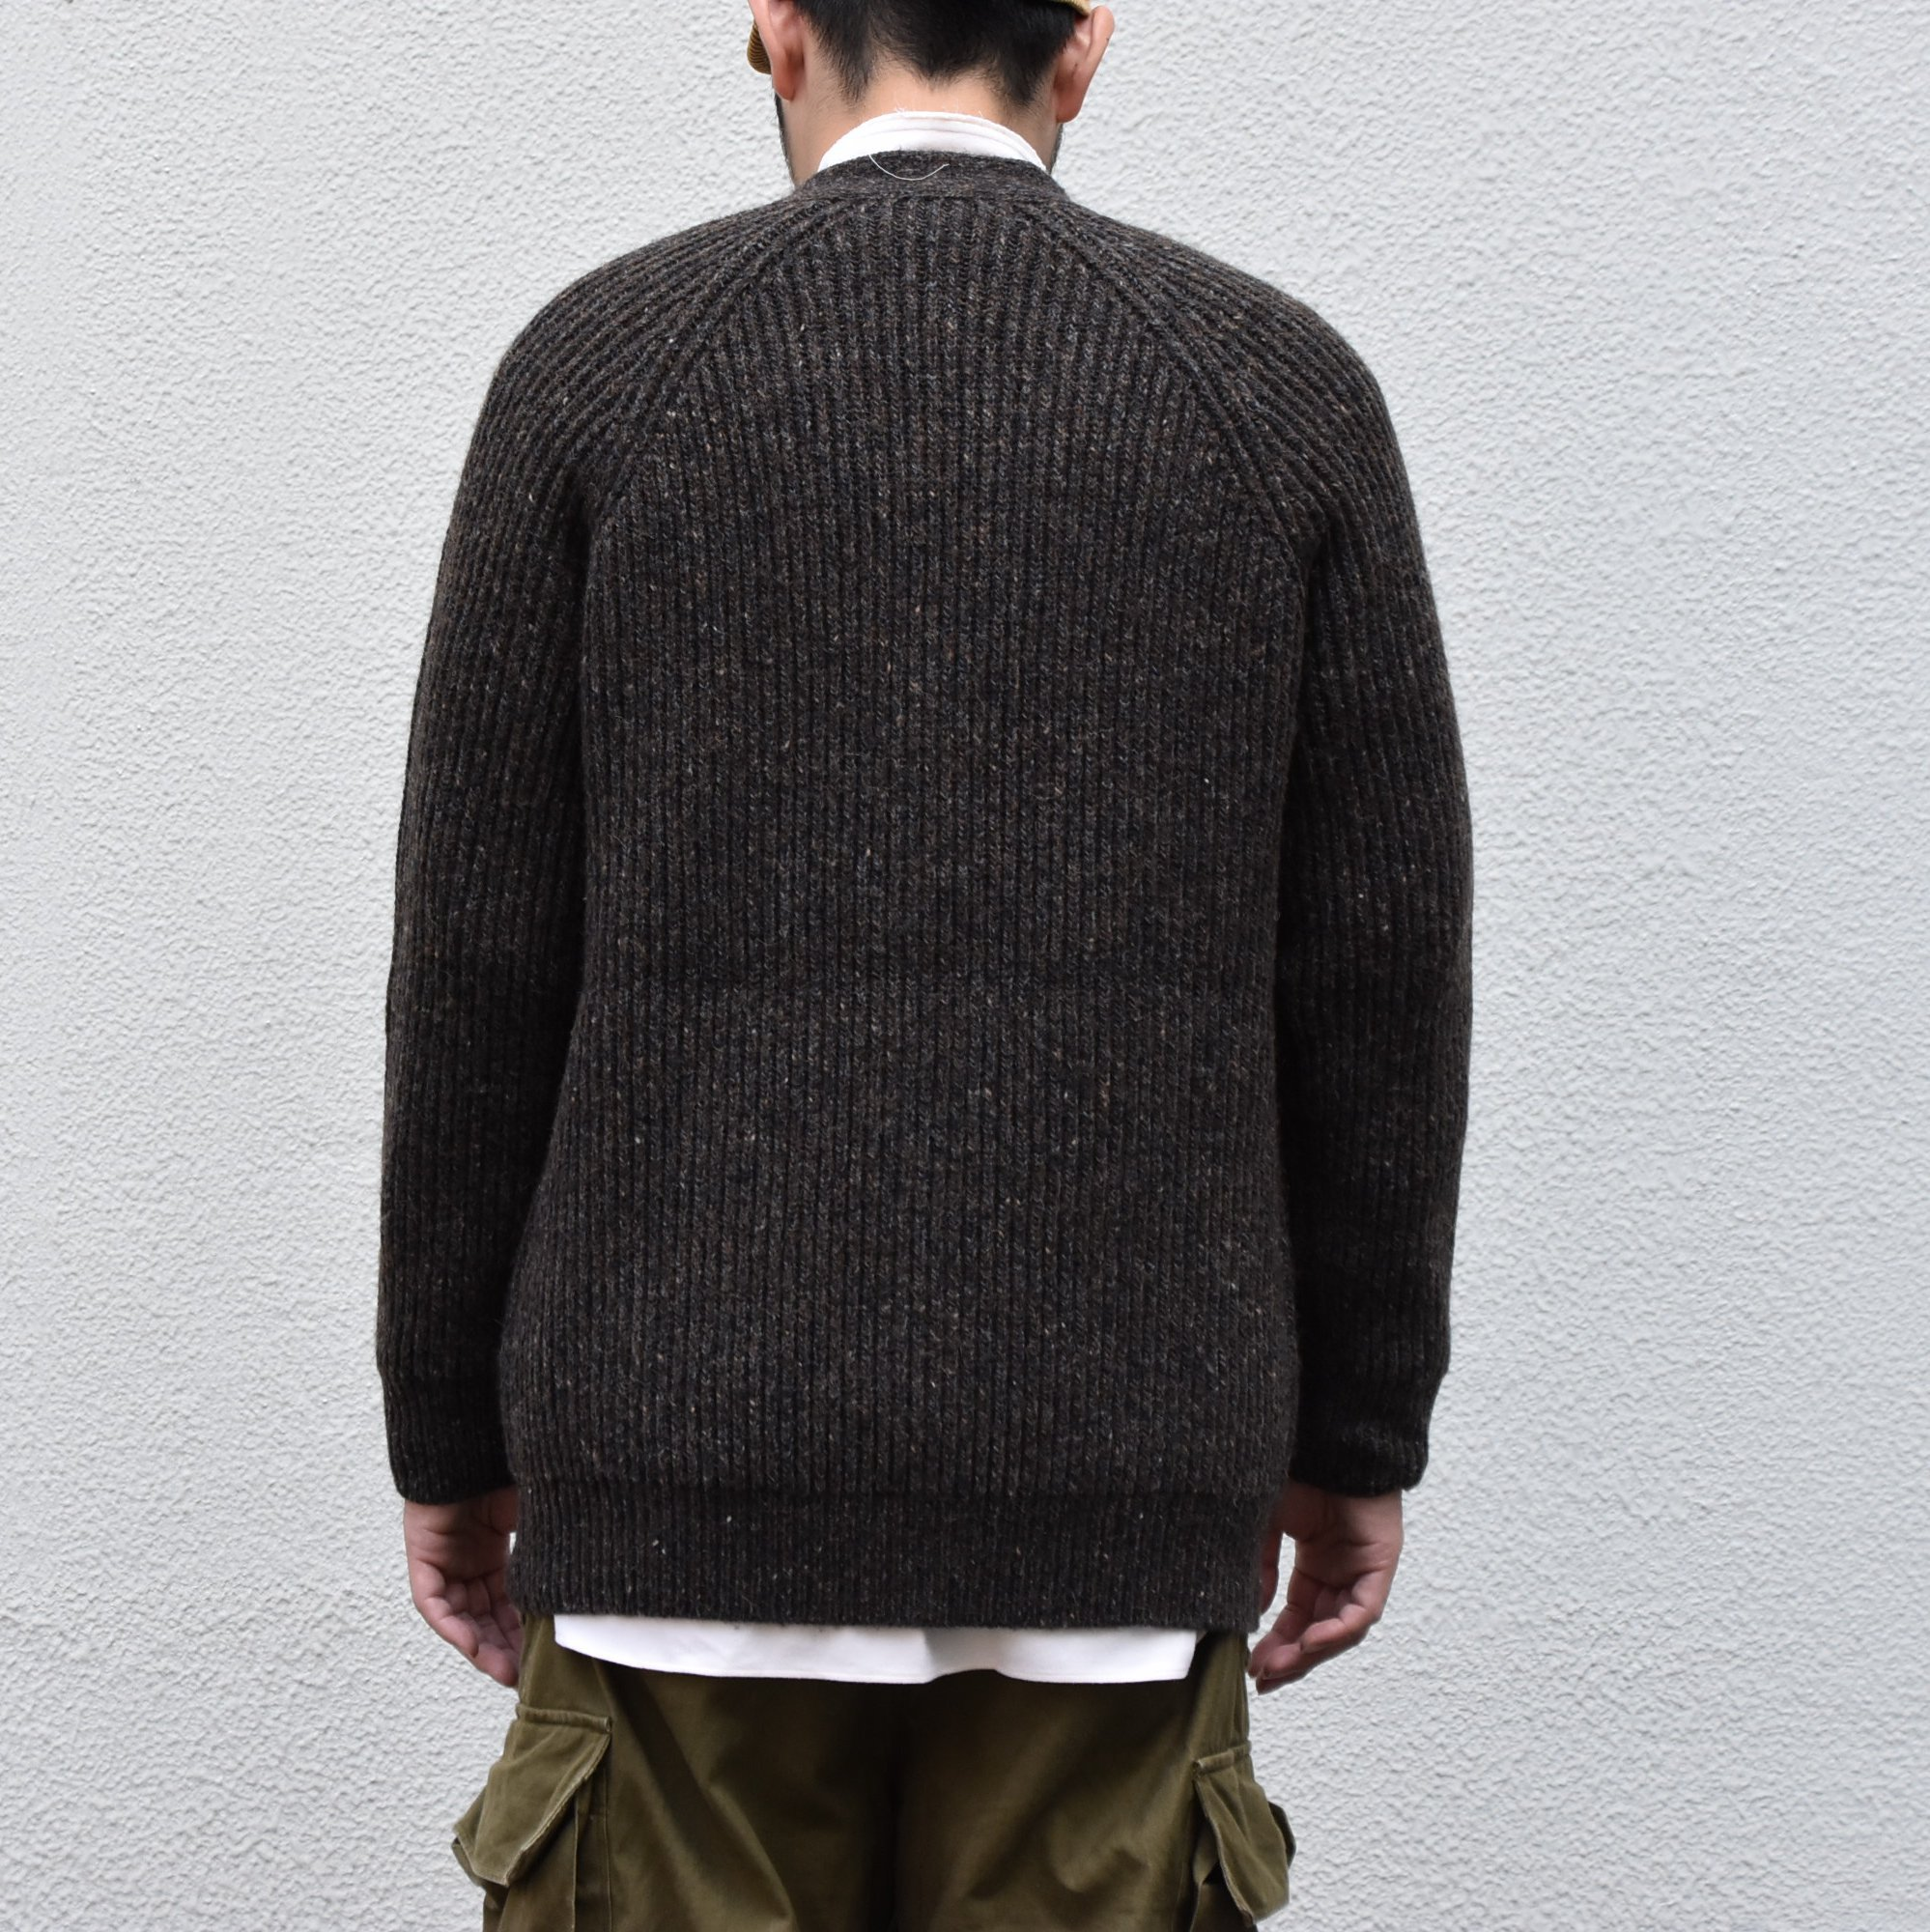 【2020】 Cristaseya(クリスタセヤ)/ CAMEL RIBBED CARDIGAN-BROWN- #22KA-CA-BB(5)